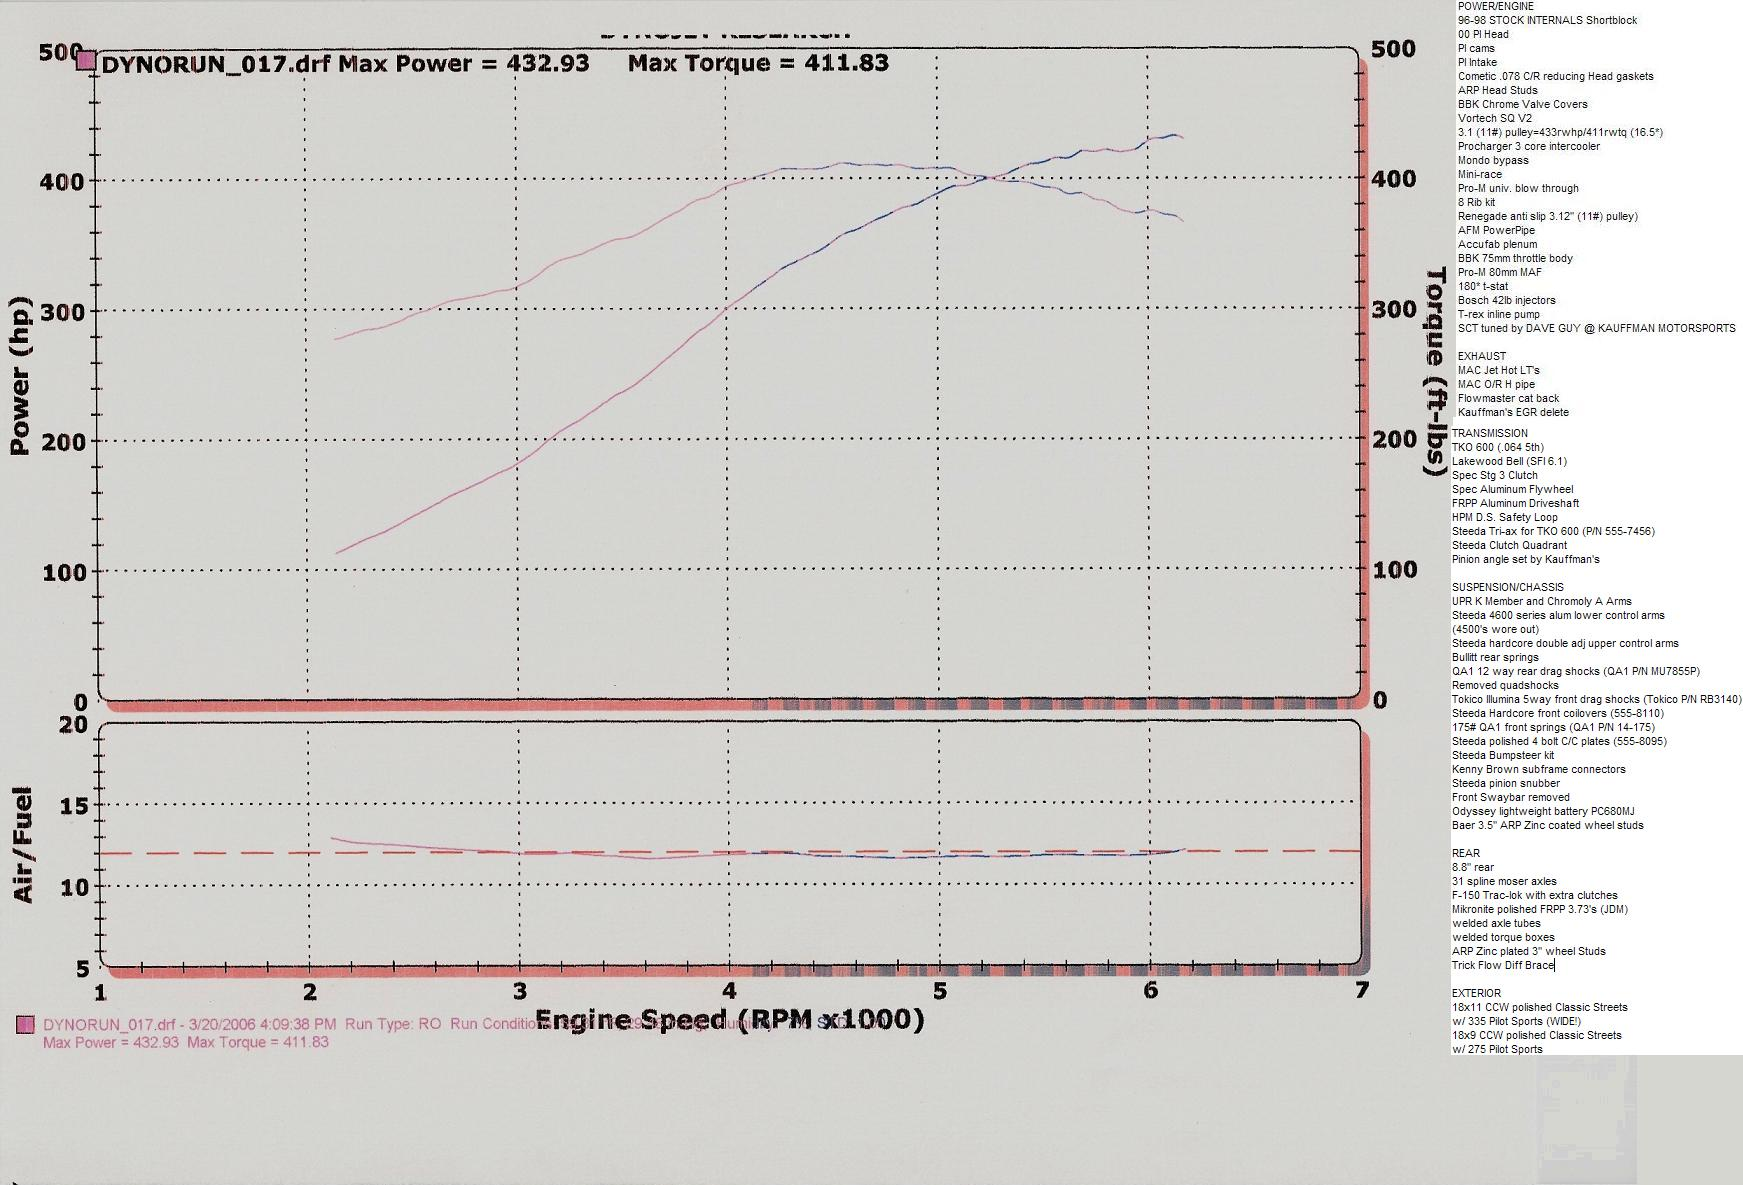 1998 Ford Mustang GT Dyno Results Graph